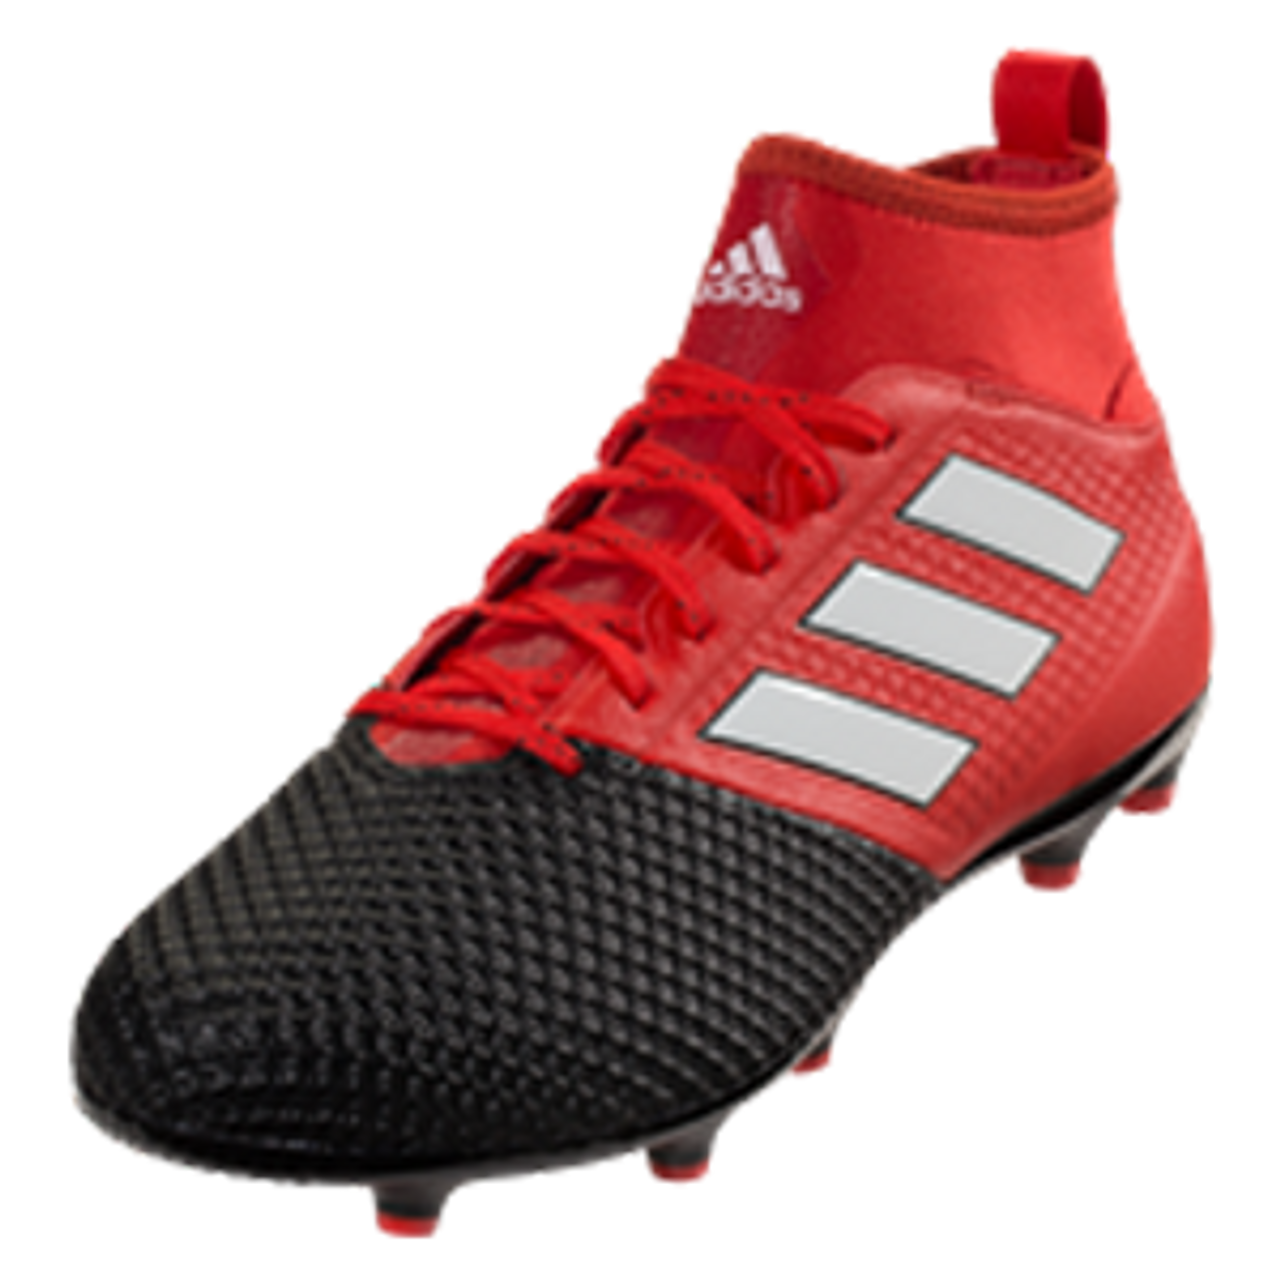 new concept 46c3f 34a60 ADIDAS ACE 17.3 PRIMEMESH FG red/black